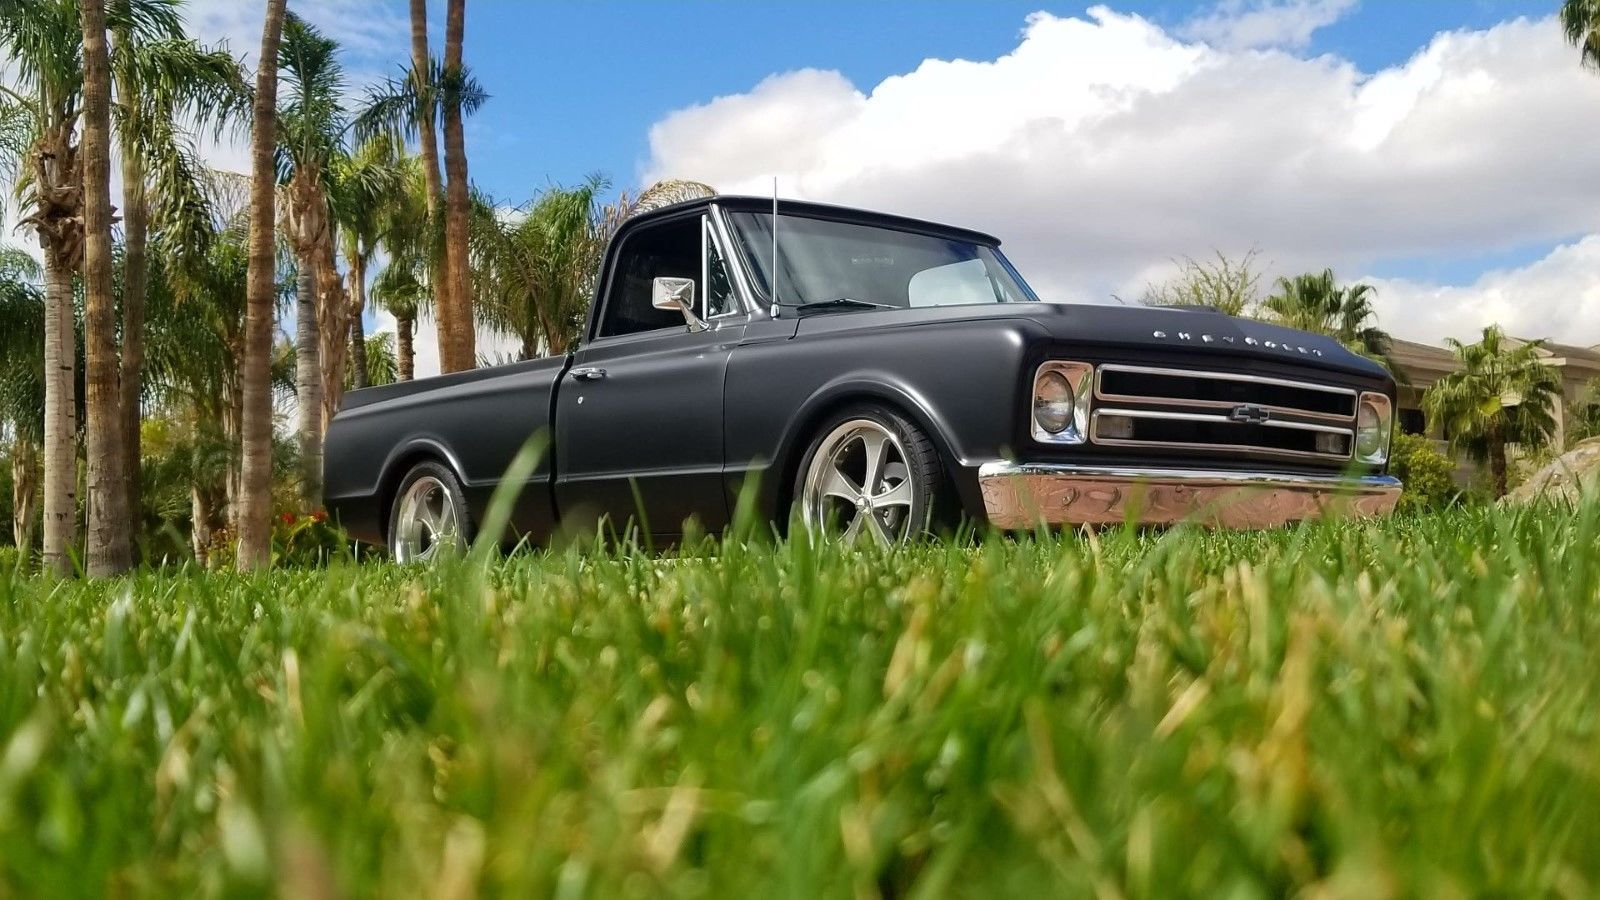 eBay 1971 Chevrolet C10 1971 C10 with 1968 front clip